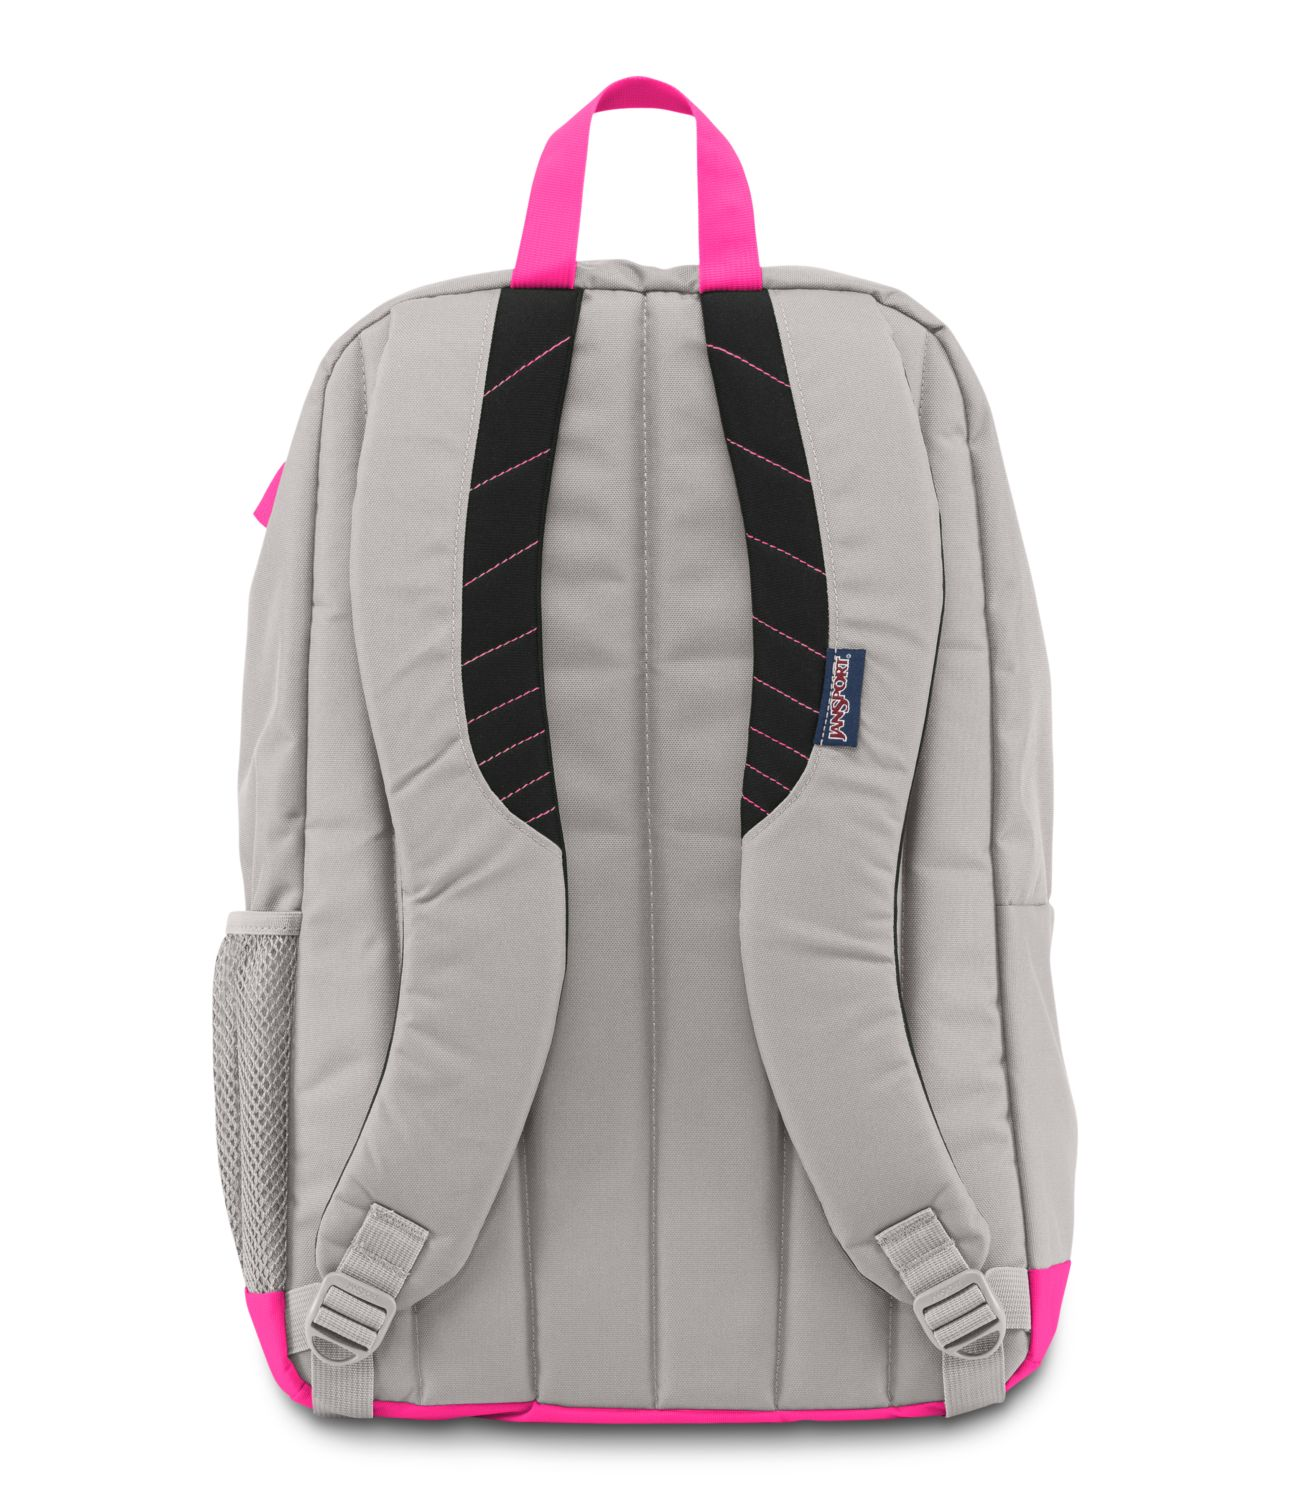 JanSport ALL PURPOSE Backpack - FLUORESCENT PINK - Fantasyard ...